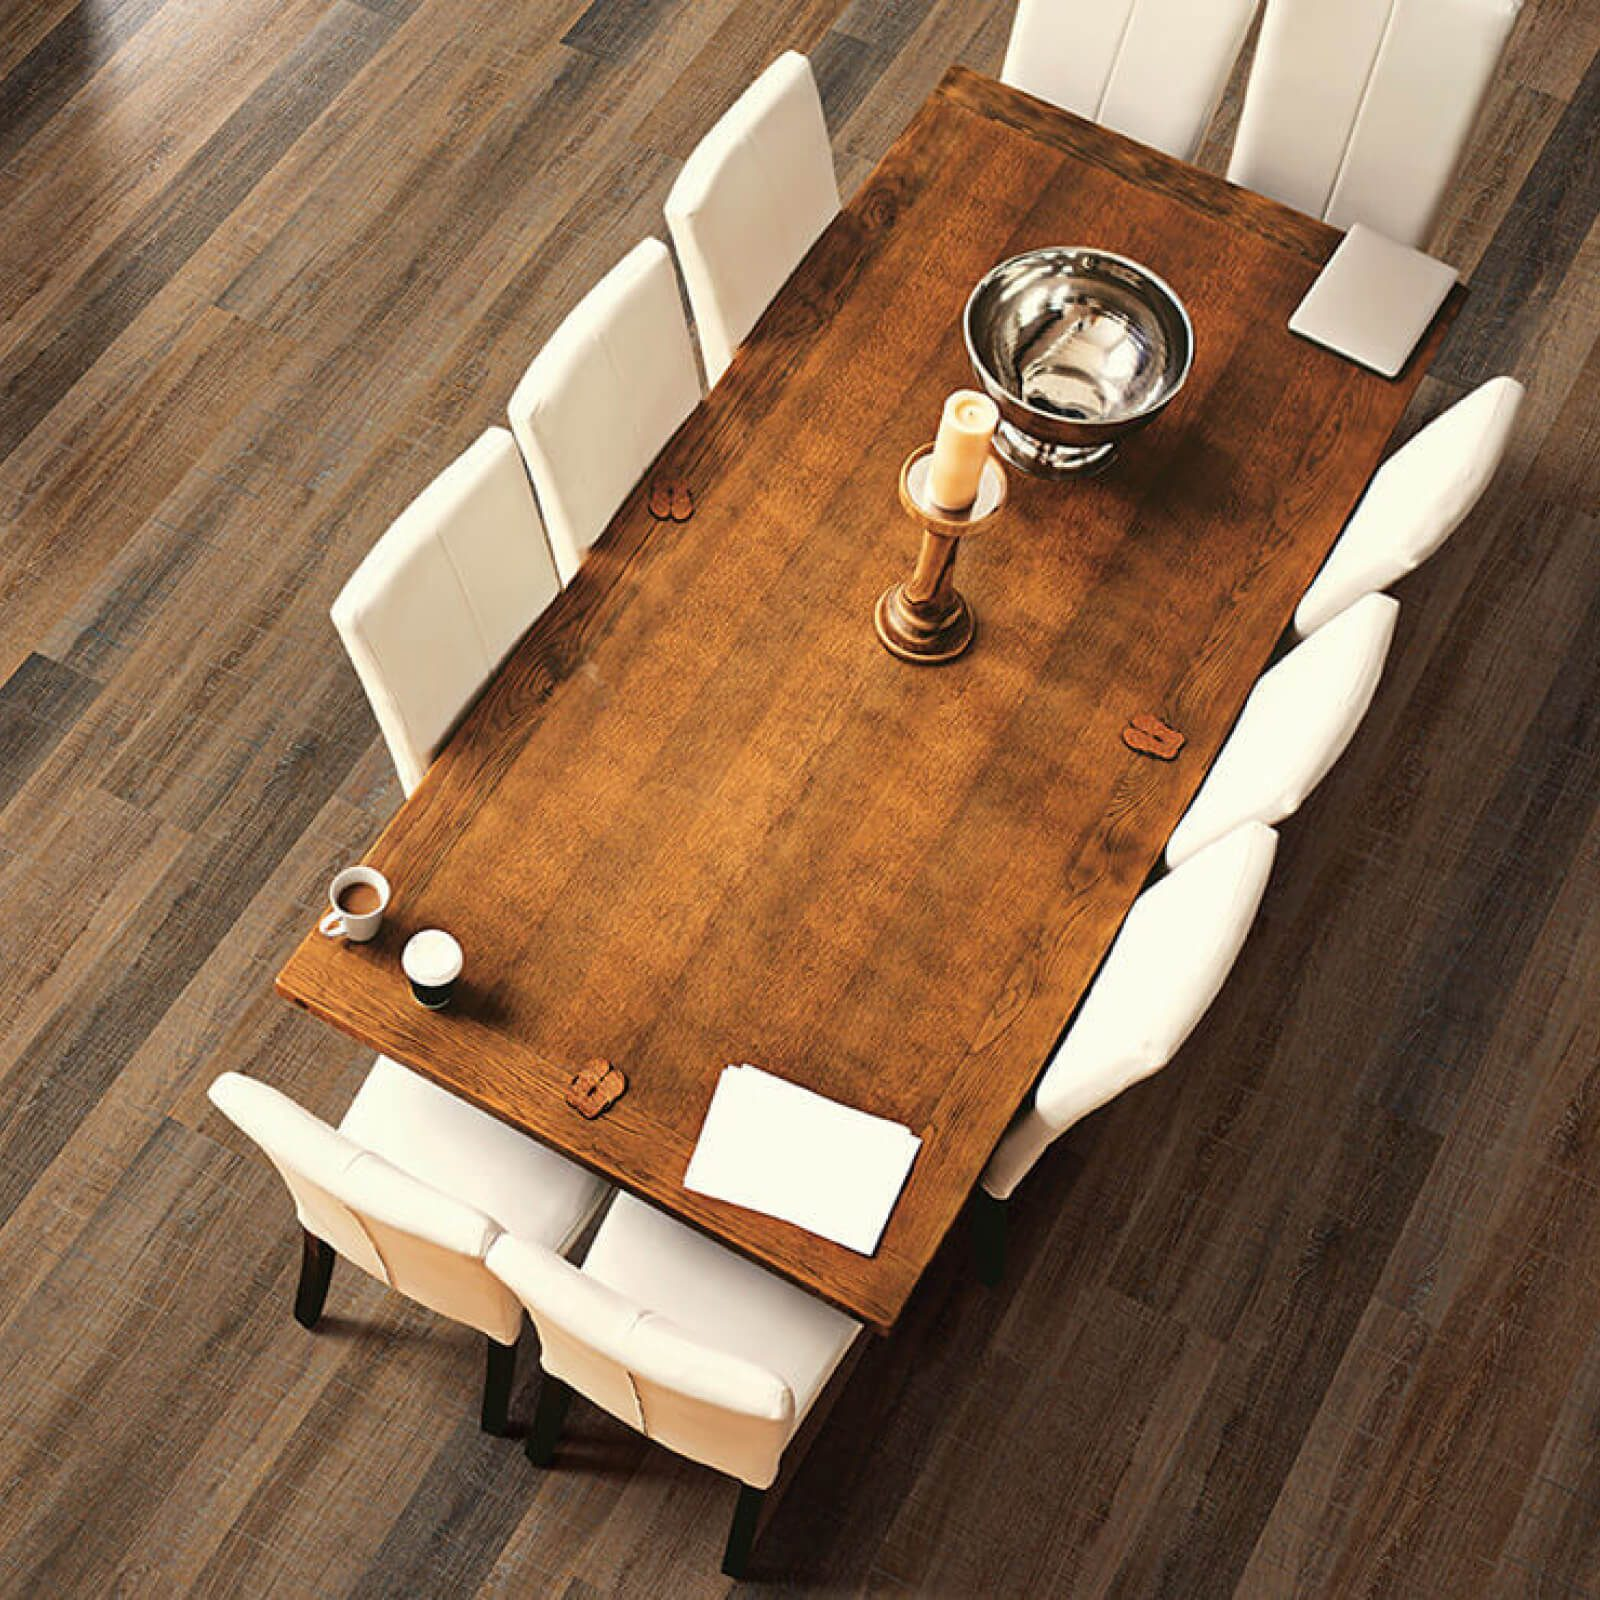 Dining room flooring | Westport Flooring